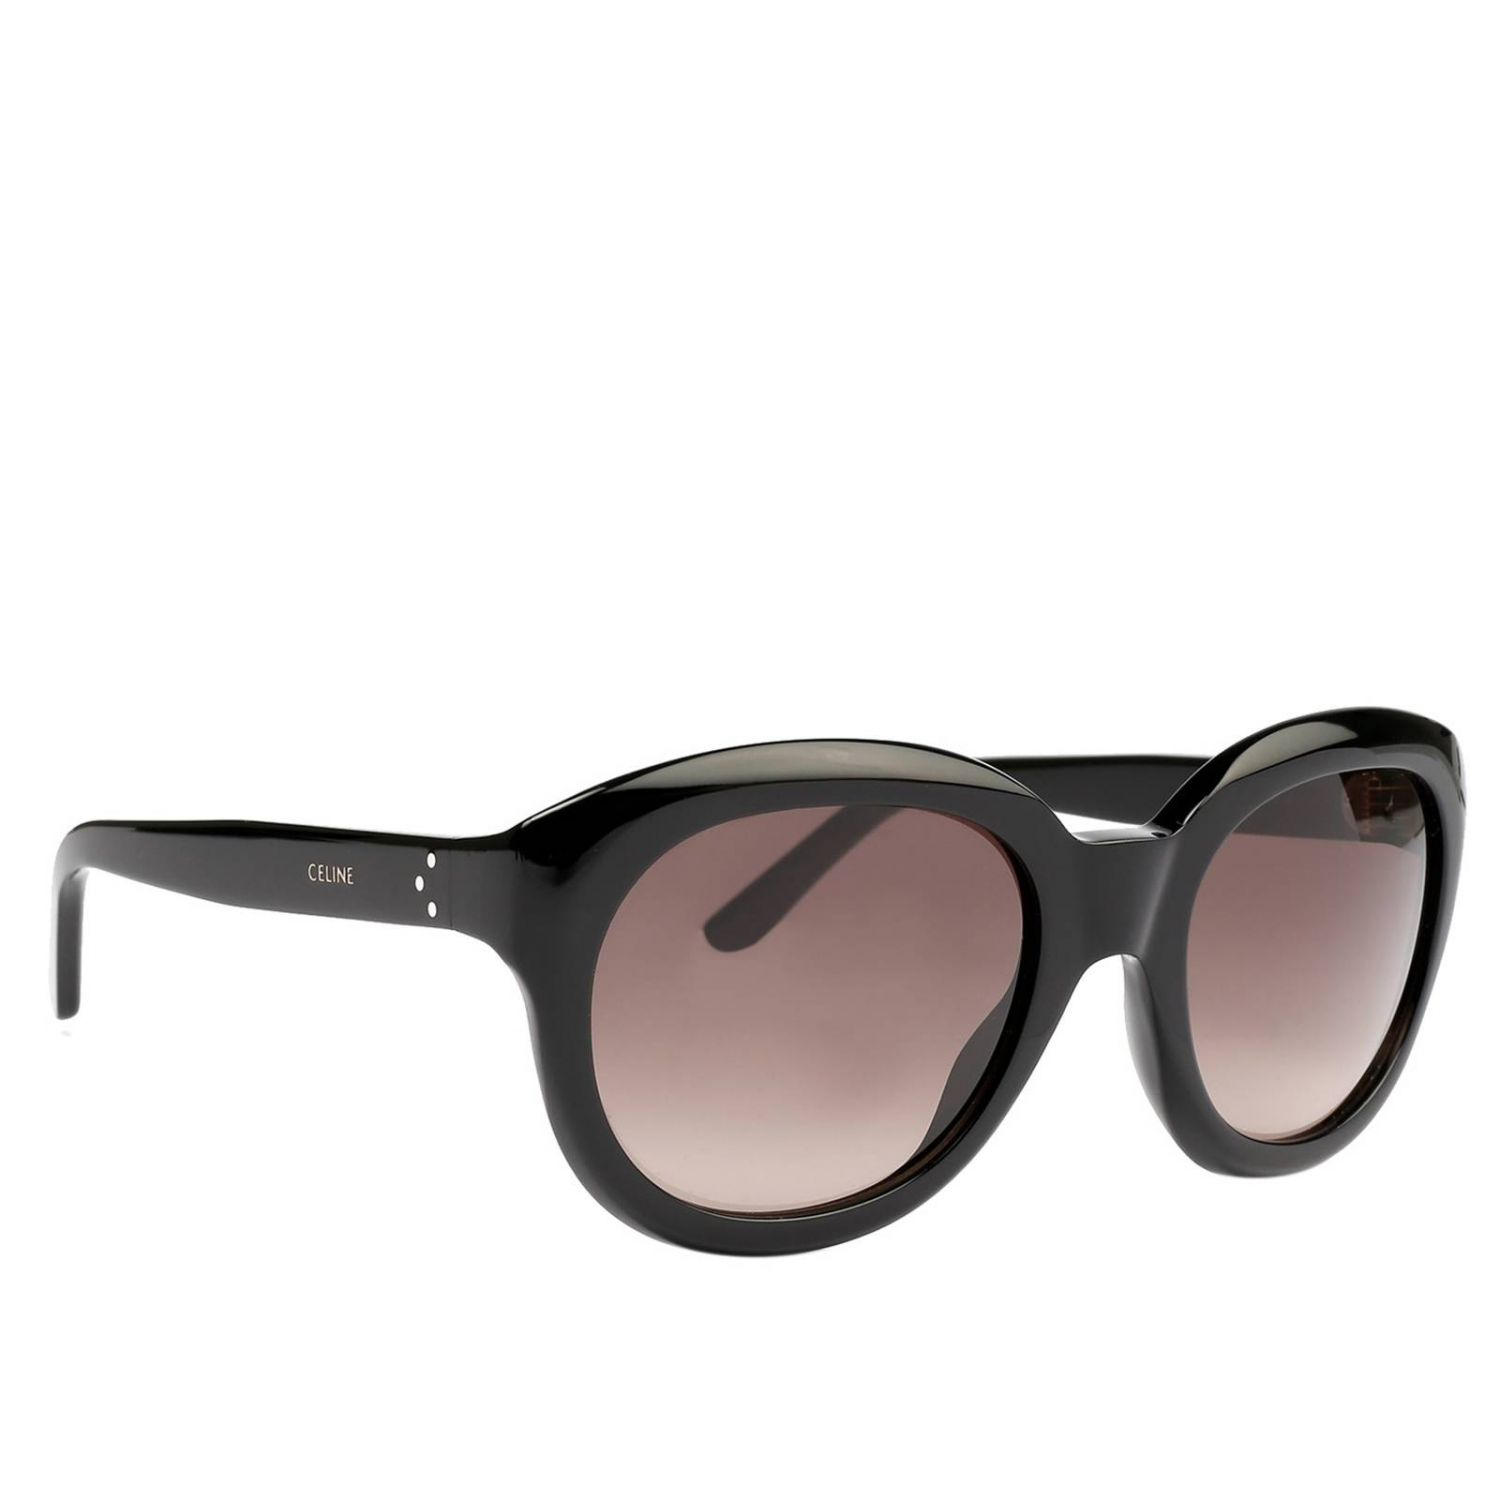 Glasses women CÉline black 1